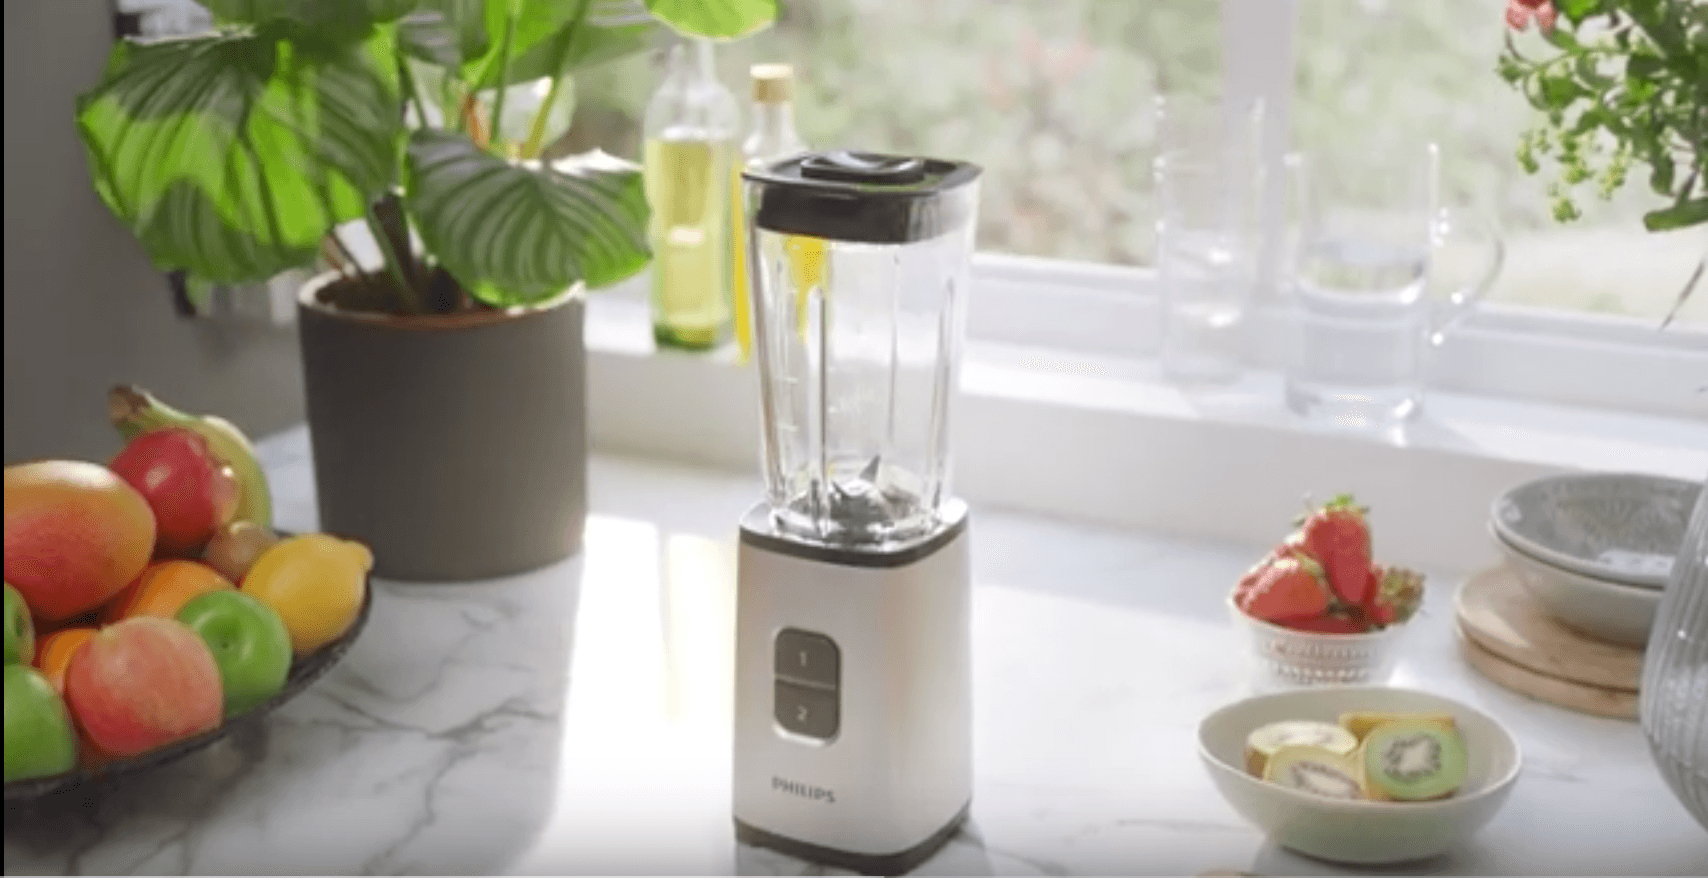 Blender Philips Mini HR 2874